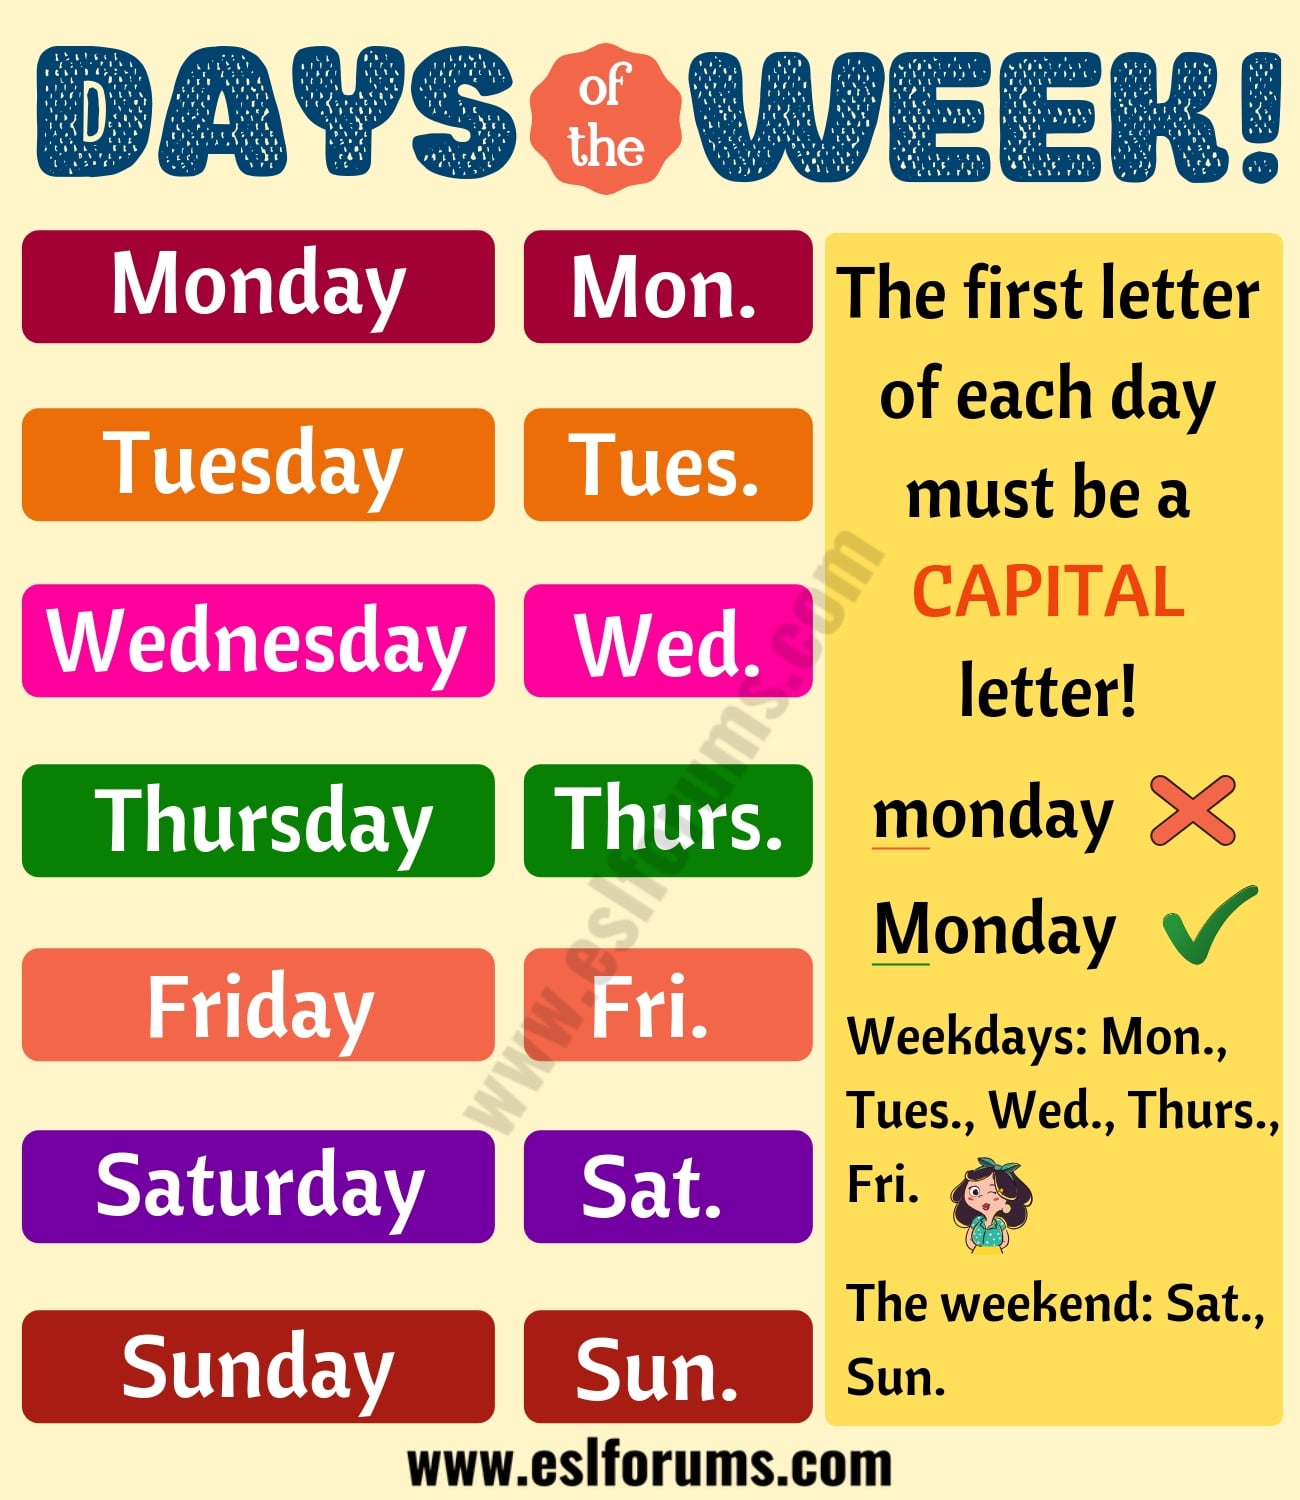 Fun Facts about 7 Days of the Week You Might not Know!